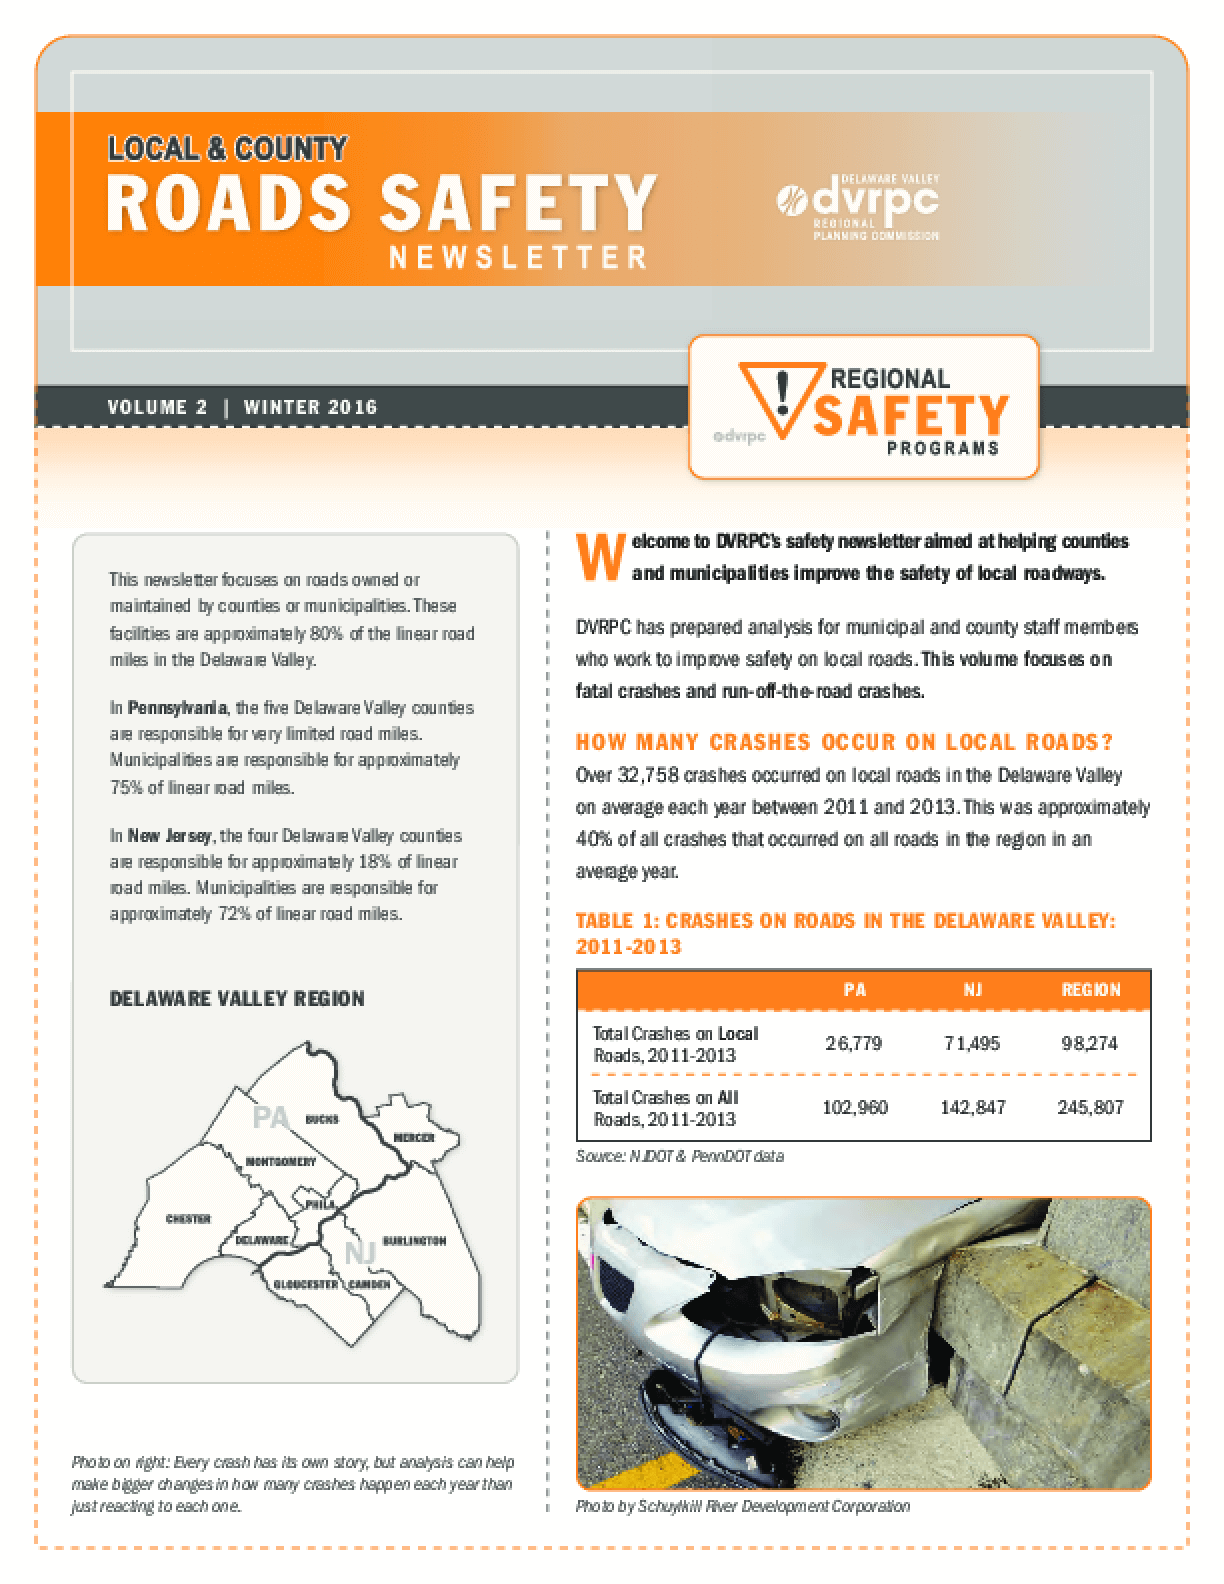 Local & County Roads Safety Newsletter